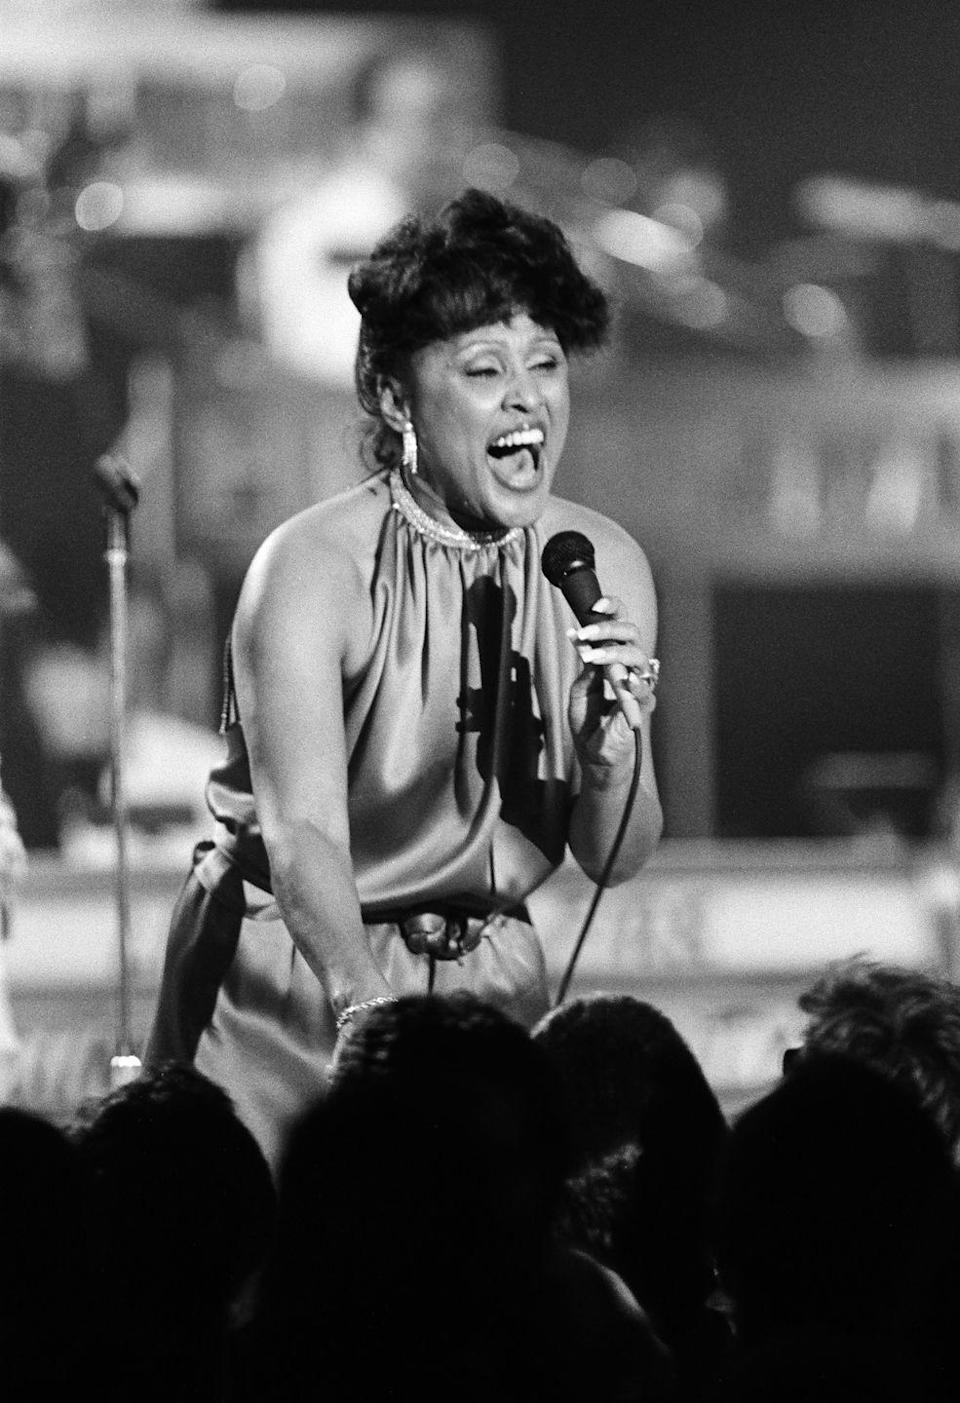 """<p>Darlene Love's barn-burner of a song may be about heartbreak, but it makes us happy to hear it every year. </p><p><a class=""""link rapid-noclick-resp"""" href=""""https://www.amazon.com/Christmas-Baby-Please-Come-Home/dp/B002SZZ3F2?tag=syn-yahoo-20&ascsubtag=%5Bartid%7C10055.g.2680%5Bsrc%7Cyahoo-us"""" rel=""""nofollow noopener"""" target=""""_blank"""" data-ylk=""""slk:AMAZON"""">AMAZON</a> <a class=""""link rapid-noclick-resp"""" href=""""https://go.redirectingat.com?id=74968X1596630&url=https%3A%2F%2Fmusic.apple.com%2Fgb%2Falbum%2Fchristmas-baby-please-come-home-single%2F725112348&sref=https%3A%2F%2Fwww.goodhousekeeping.com%2Fholidays%2Fchristmas-ideas%2Fg2680%2Fchristmas-songs%2F"""" rel=""""nofollow noopener"""" target=""""_blank"""" data-ylk=""""slk:ITUNES"""">ITUNES</a></p>"""